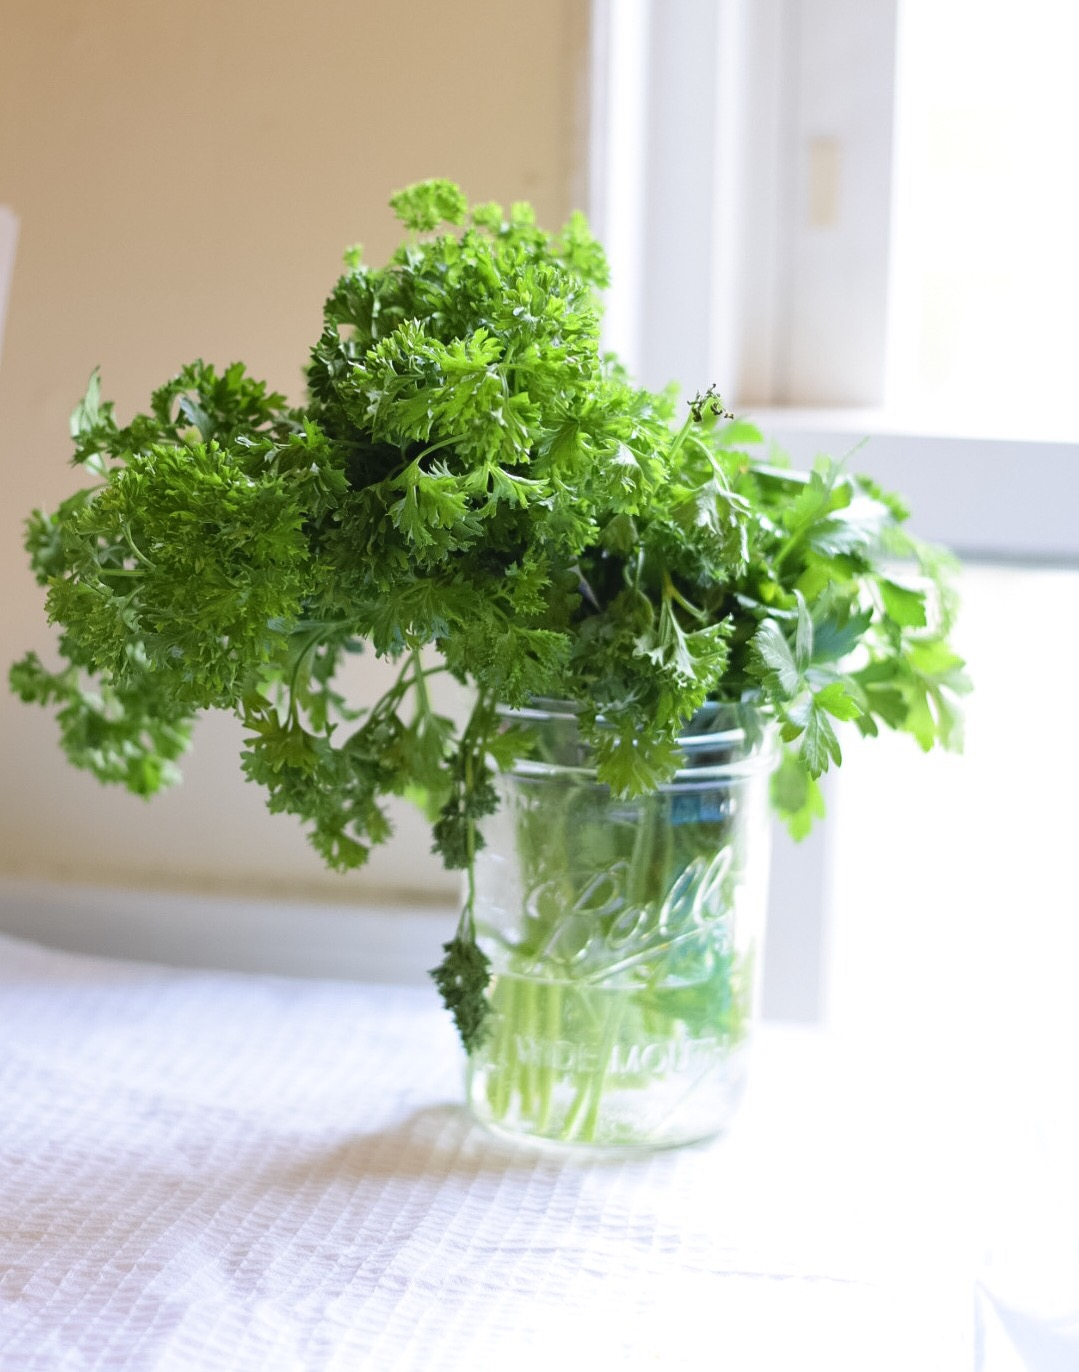 How To Keep Flowers Fresh Overnight A Guide To Fresh Flowers In The Home